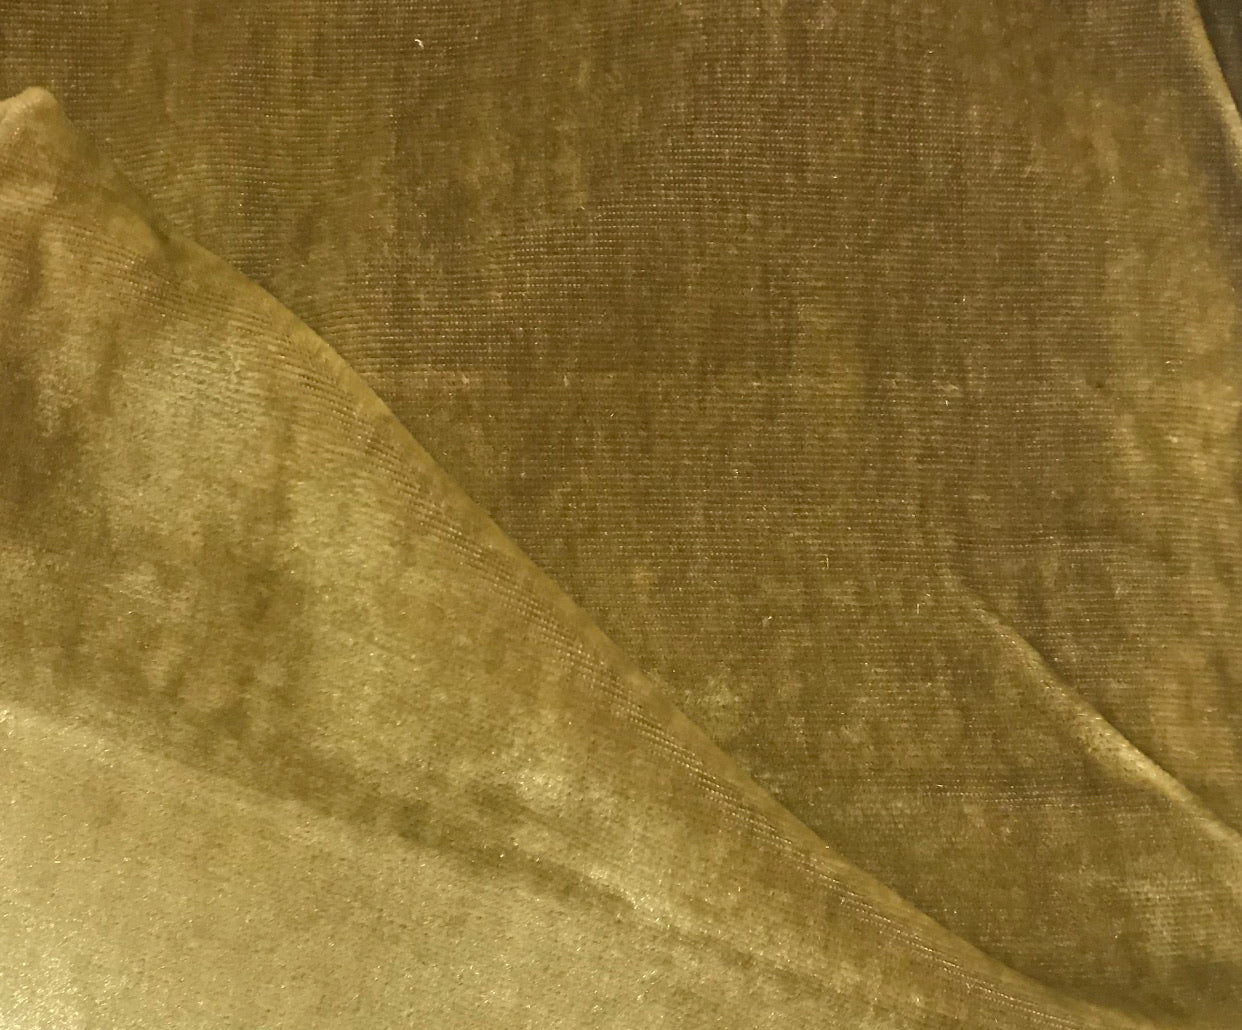 NEW Designer Silk Rayon Velvet Fabric - Dusty Mustard- By The Yard